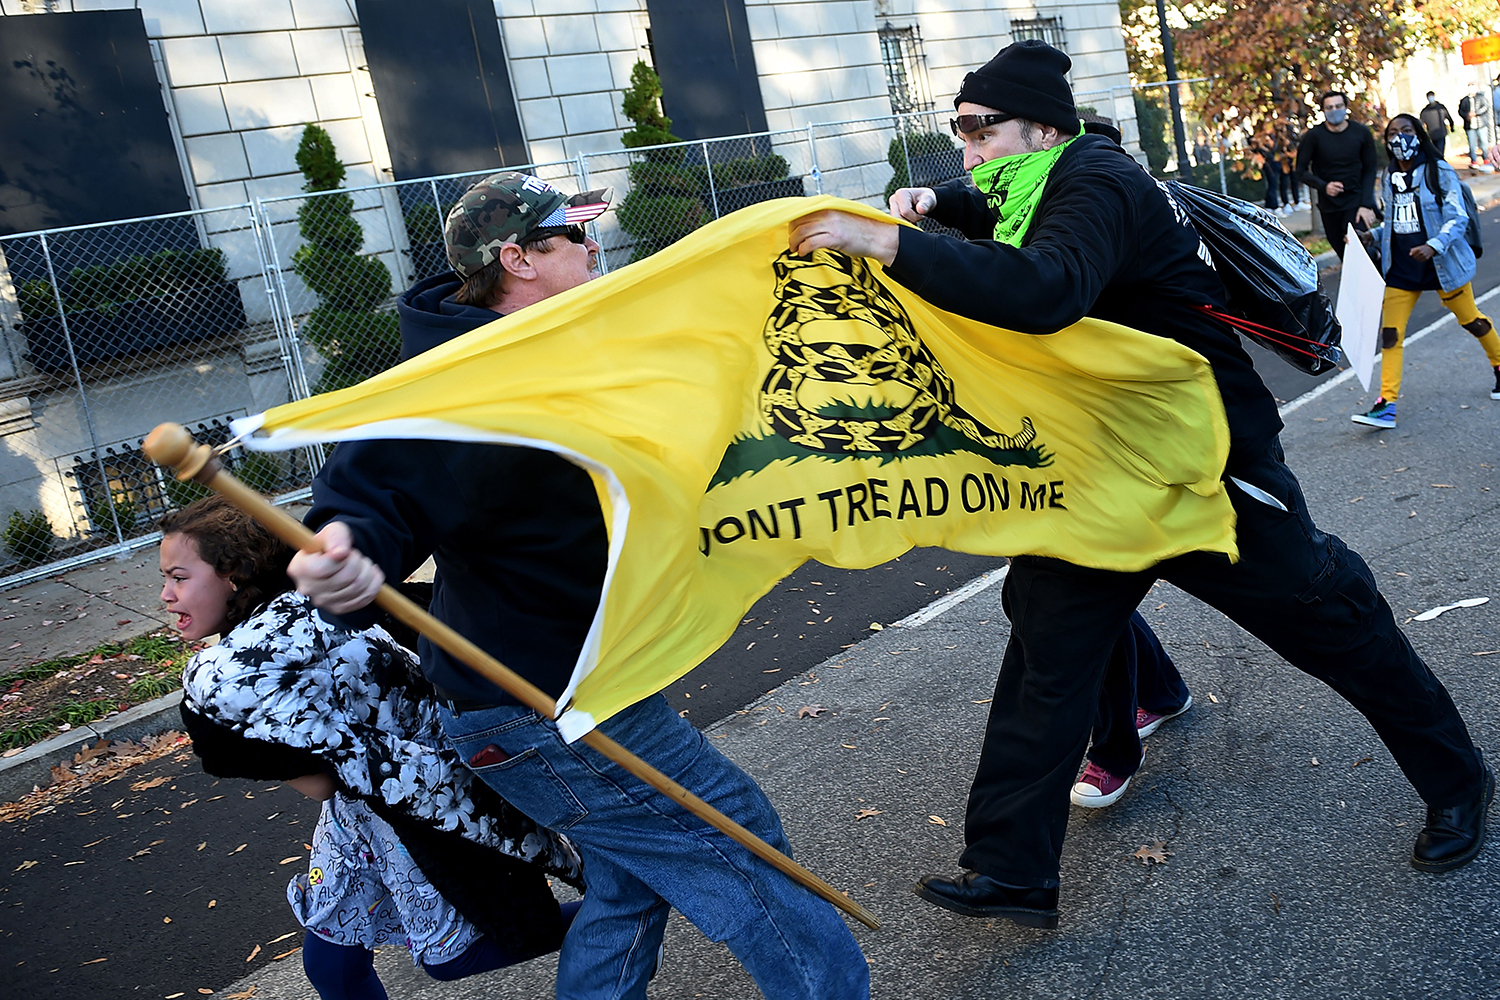 Counterprotesters clash with a supporter of U.S. President Donald Trump at a rally in Washington, D.C., on Nov. 14. OLIVIER DOULIERY/AFP via Getty Images